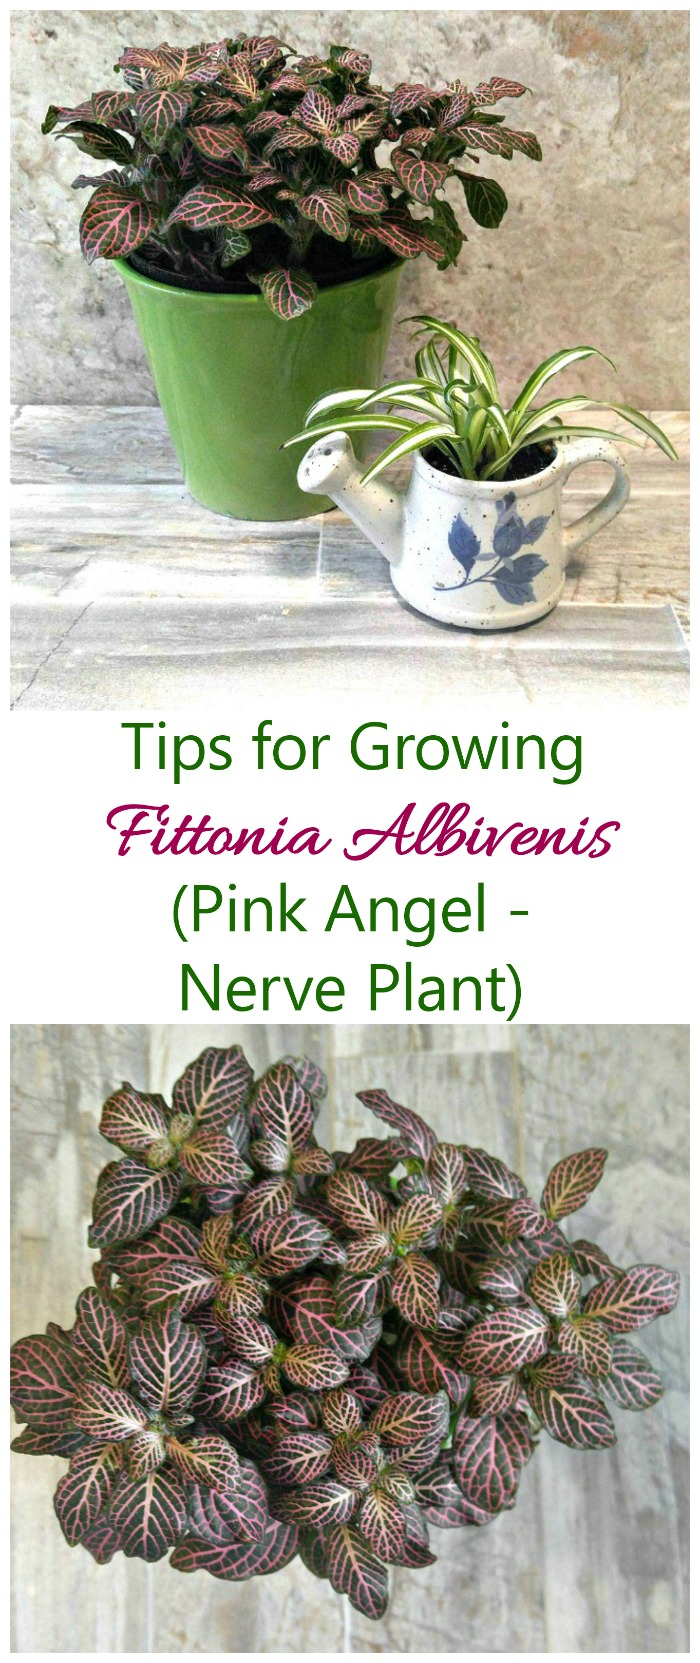 Growing fittonia albivenis how to grow nerve plant pink angel if you are looking for the ideal terrarium plant try growing fittonia albivenis it mightylinksfo